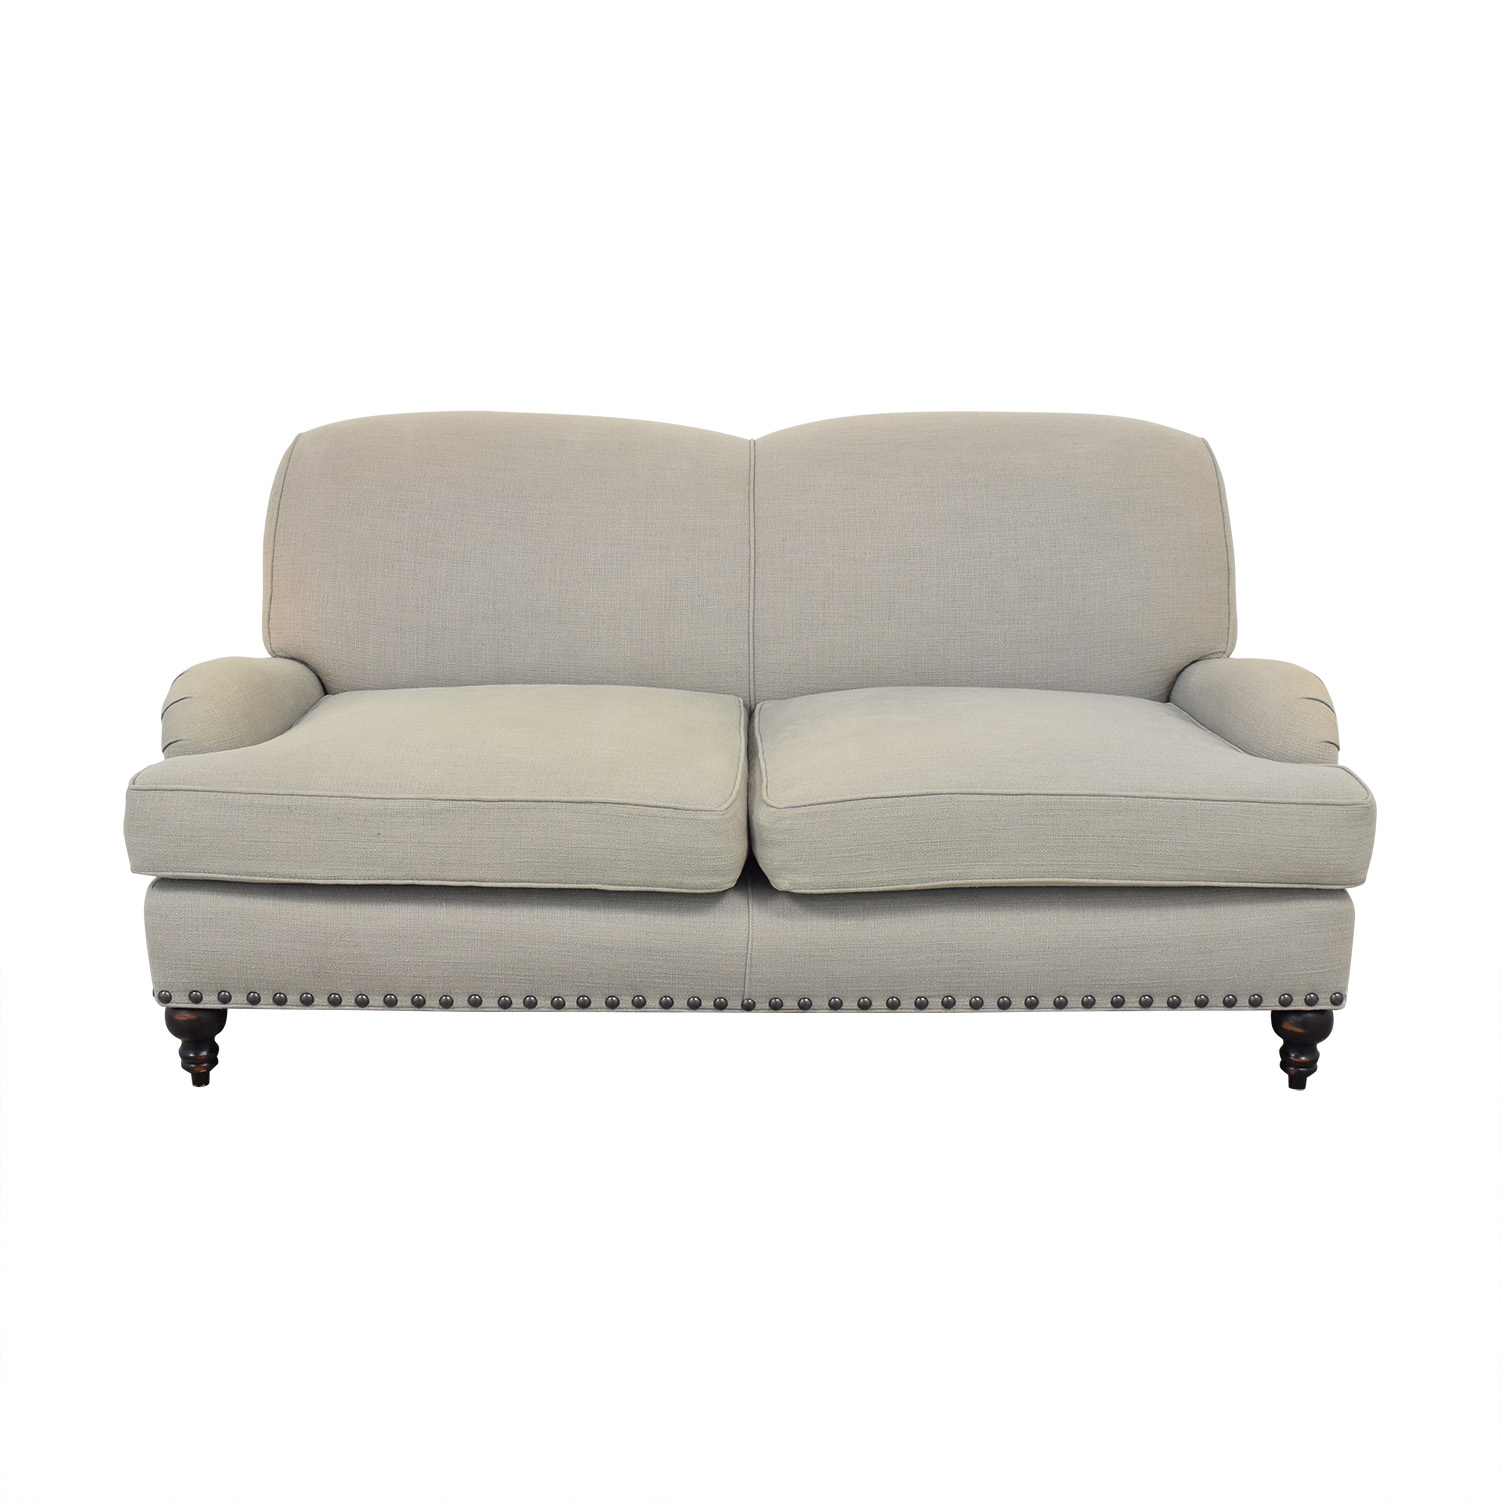 Arhaus Arhaus Outerbanks Sofa used